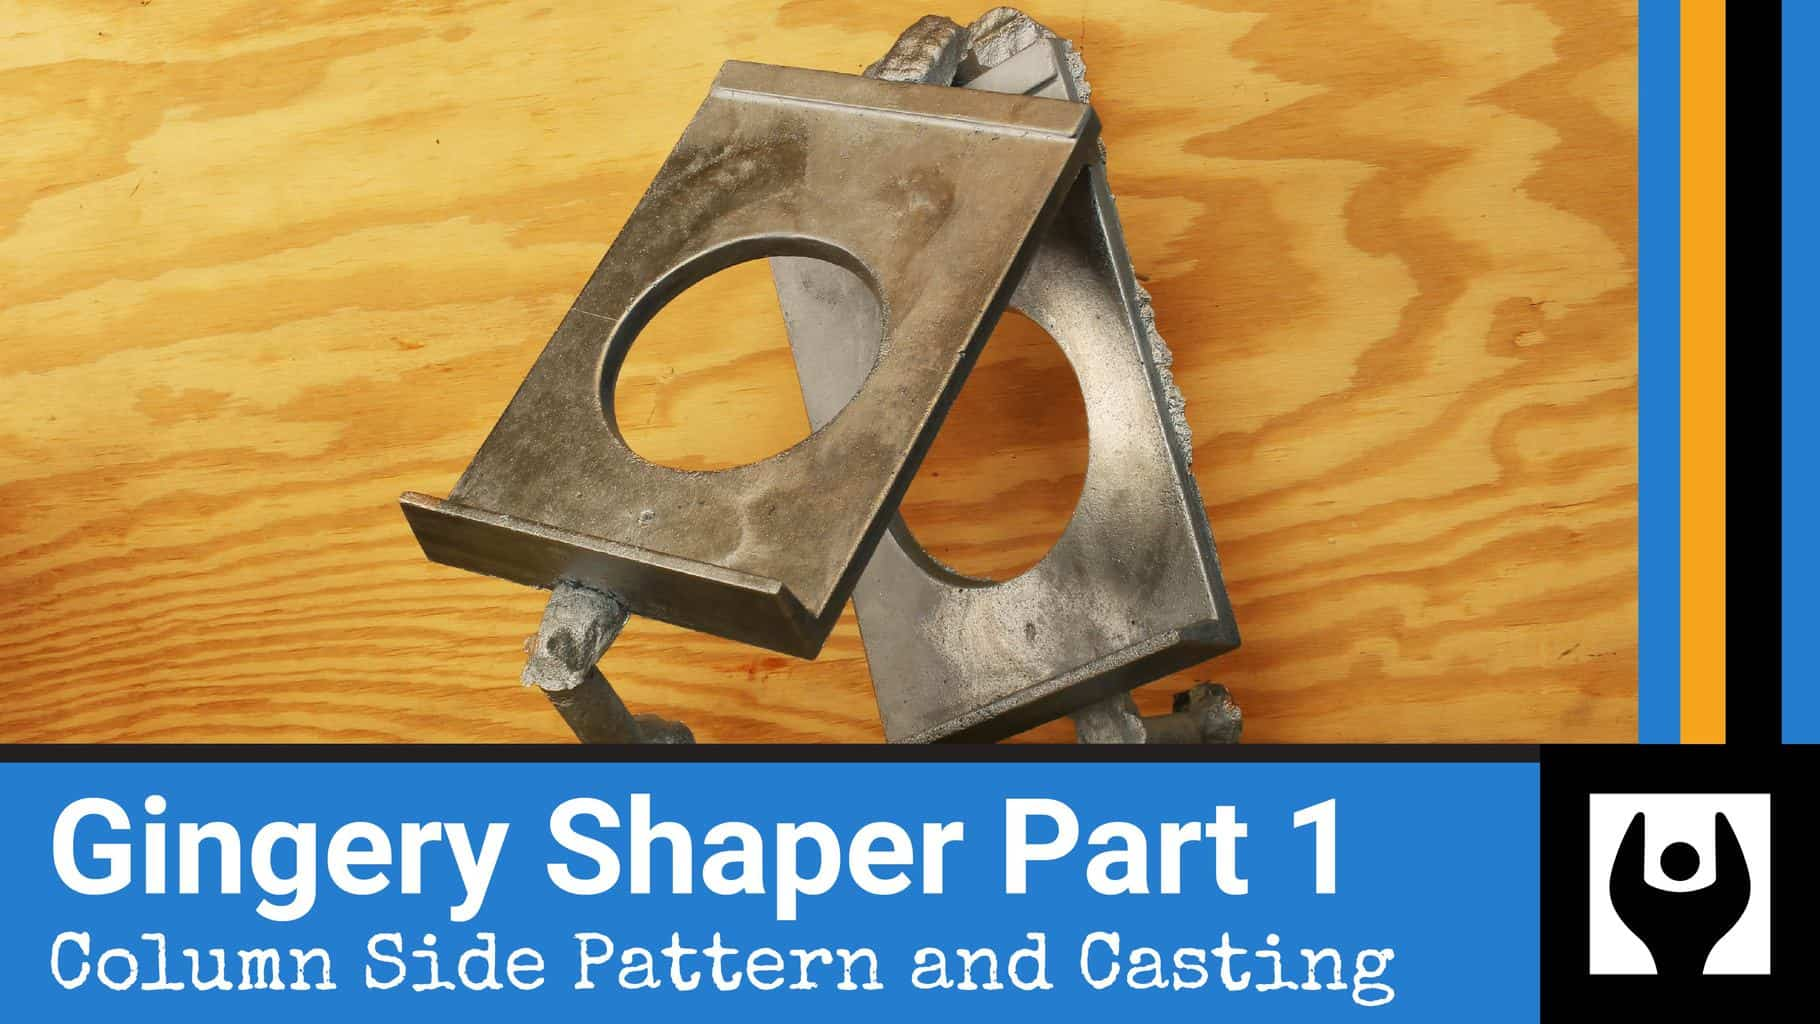 The thumbnail for the first video in a series on building the Gingery shaper.